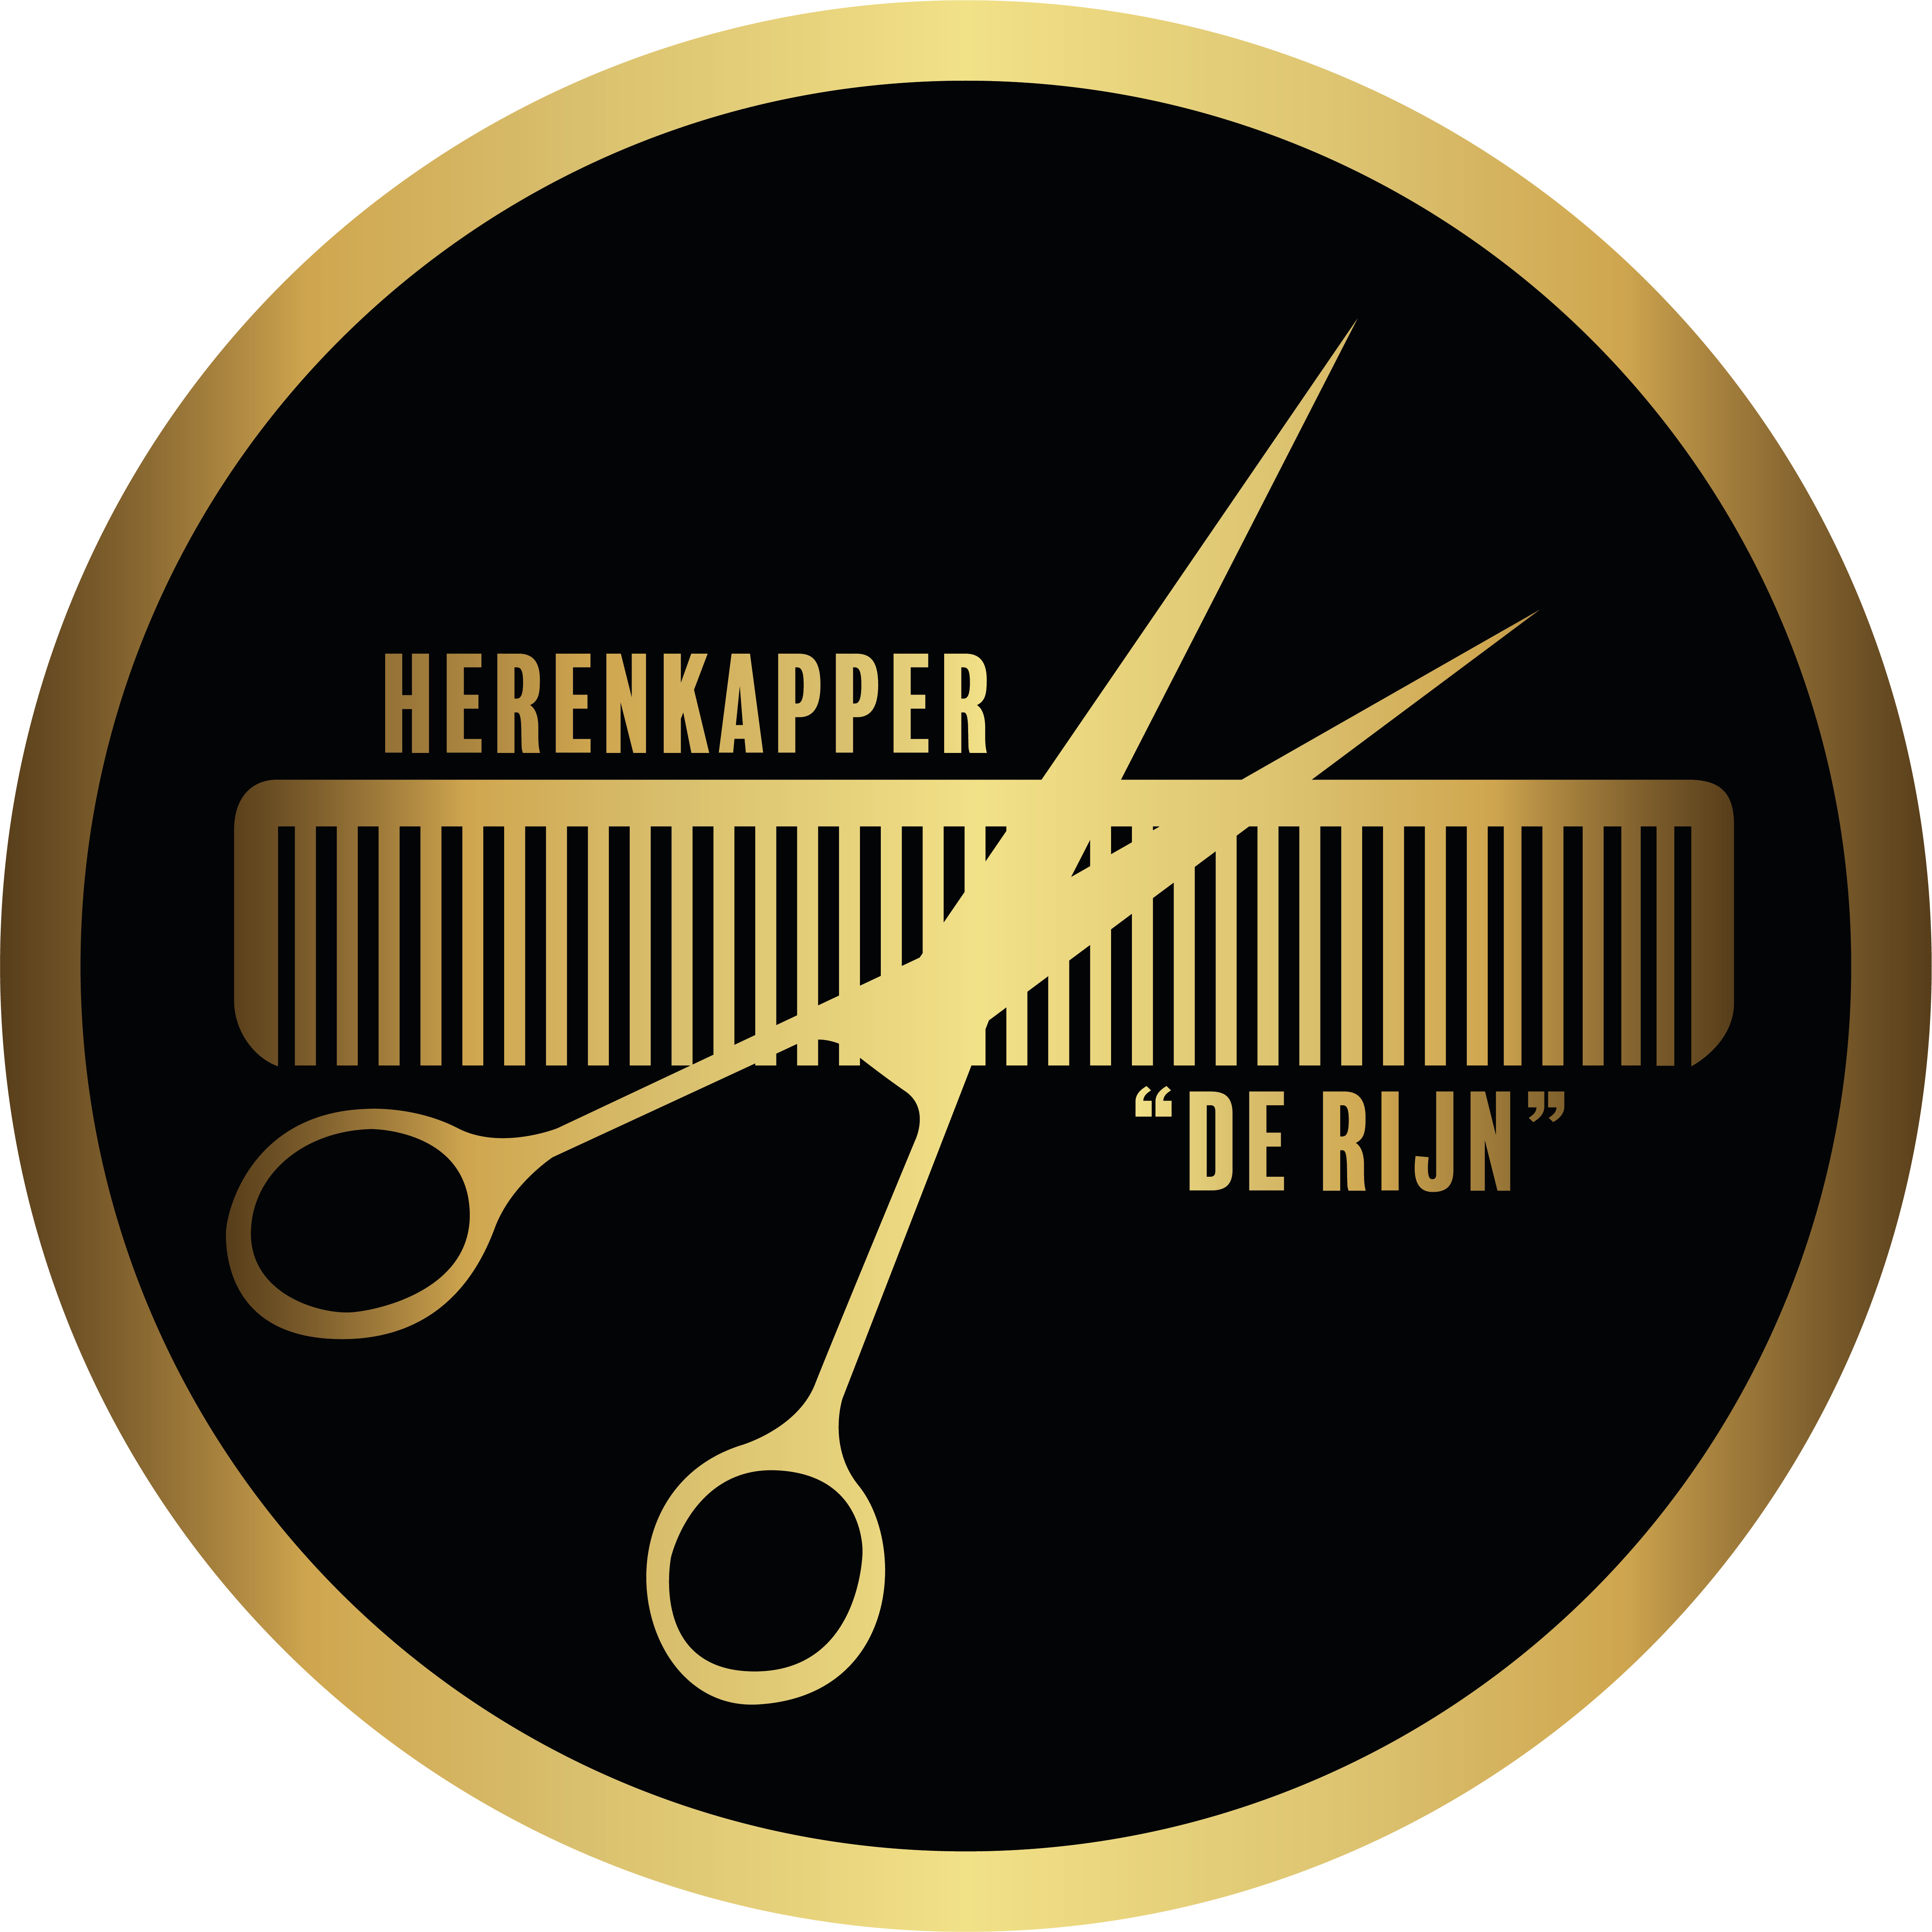 Herenkapperderijn